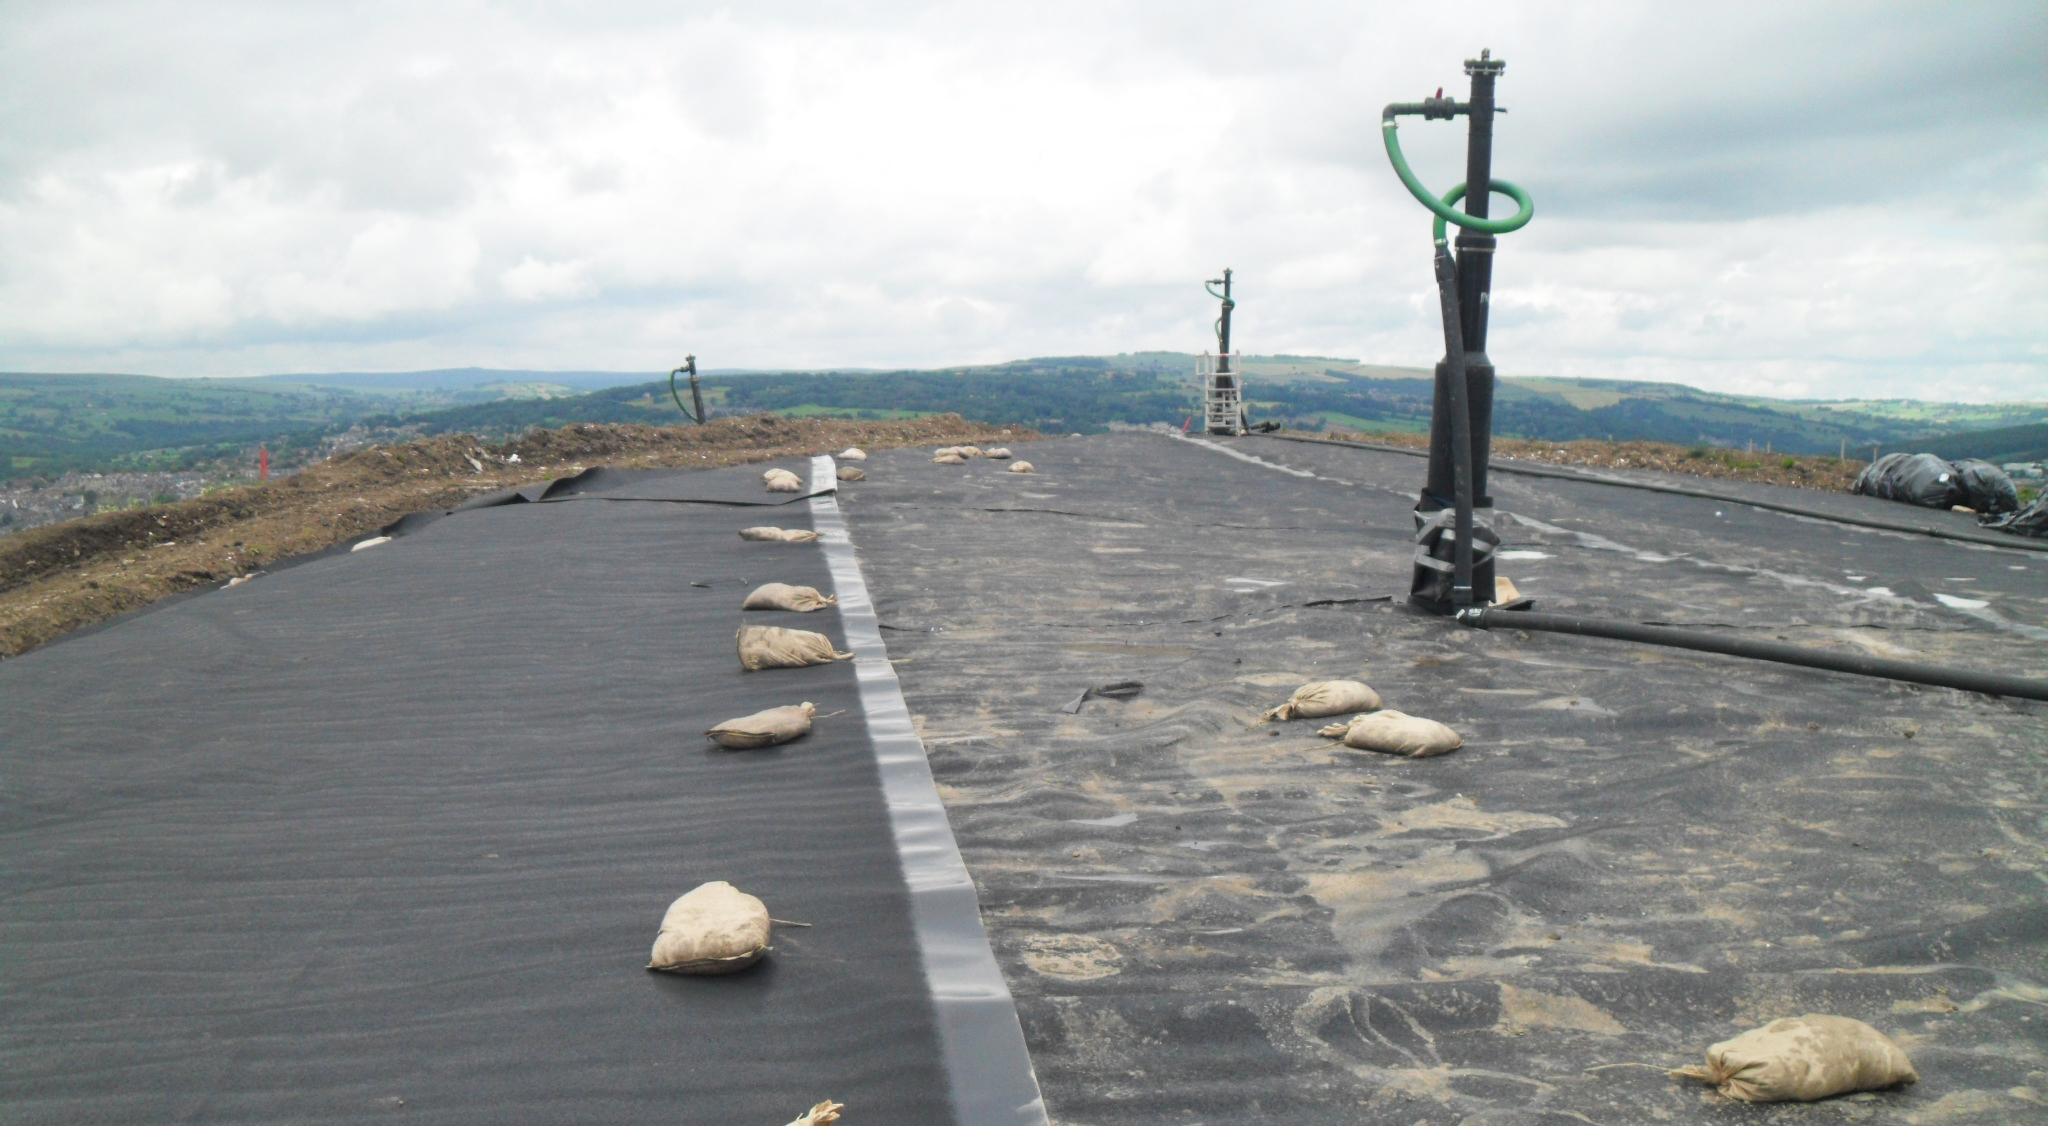 VHE were awarded the contract for the permanent capping of the Landfill Cell at Parkwood Landfill in Sheffield.